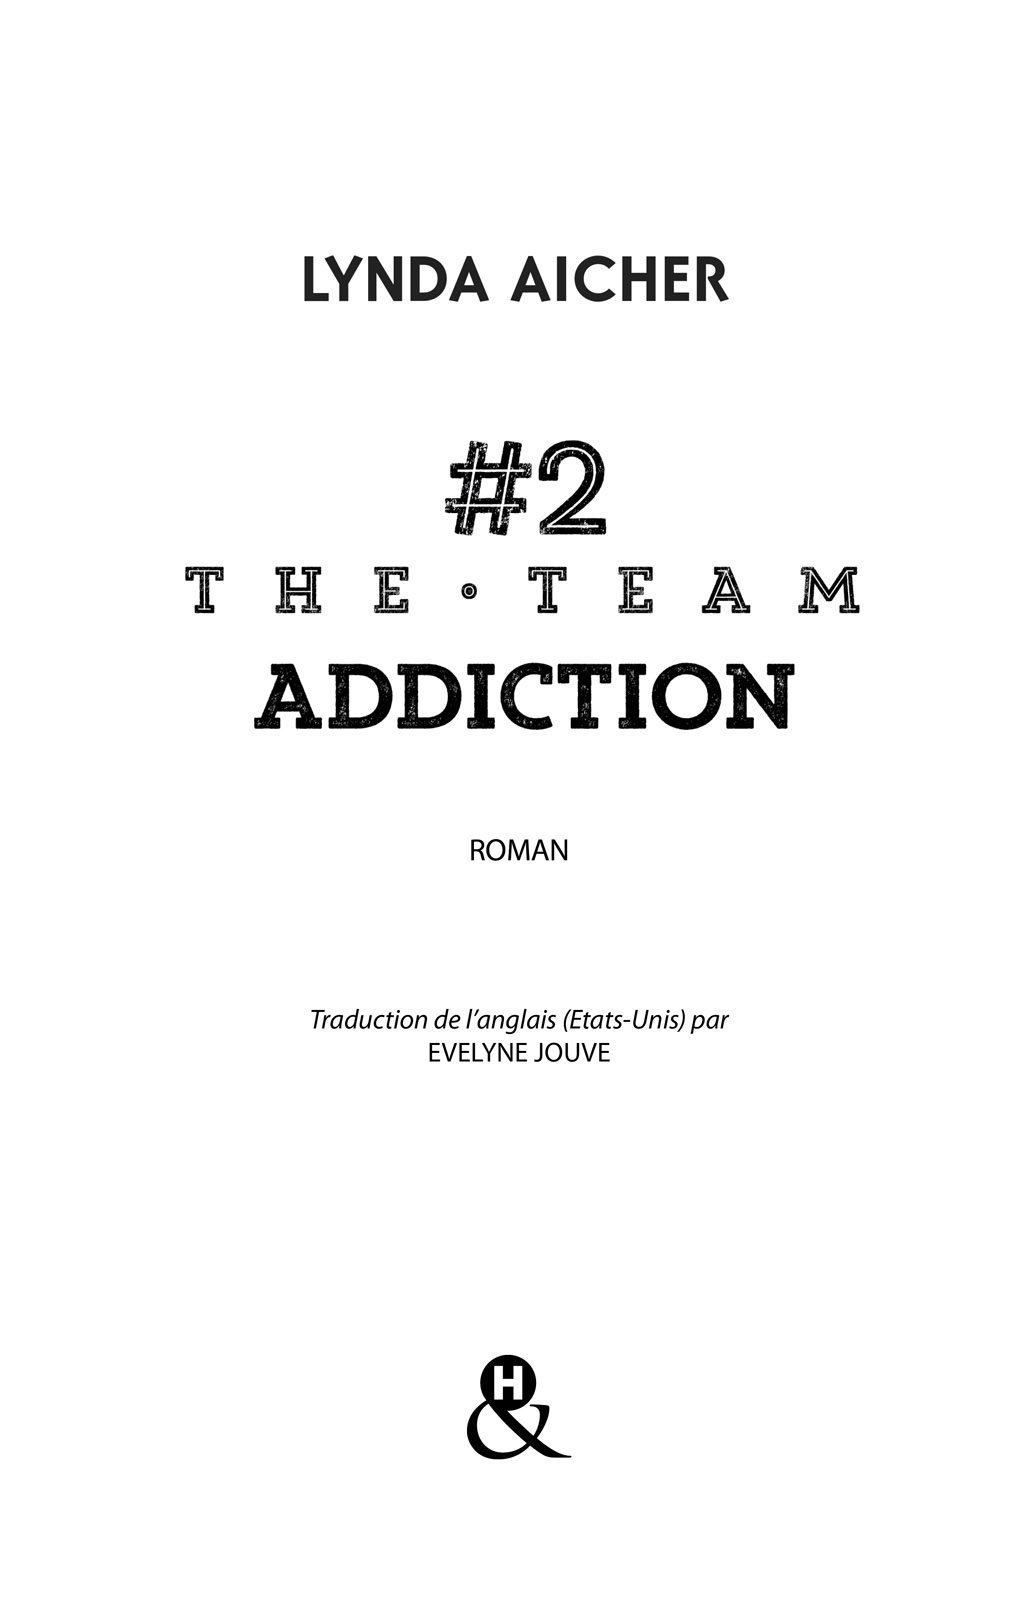 Page de titre : Lynda Aicher, The Team : Addiction, Harlequin